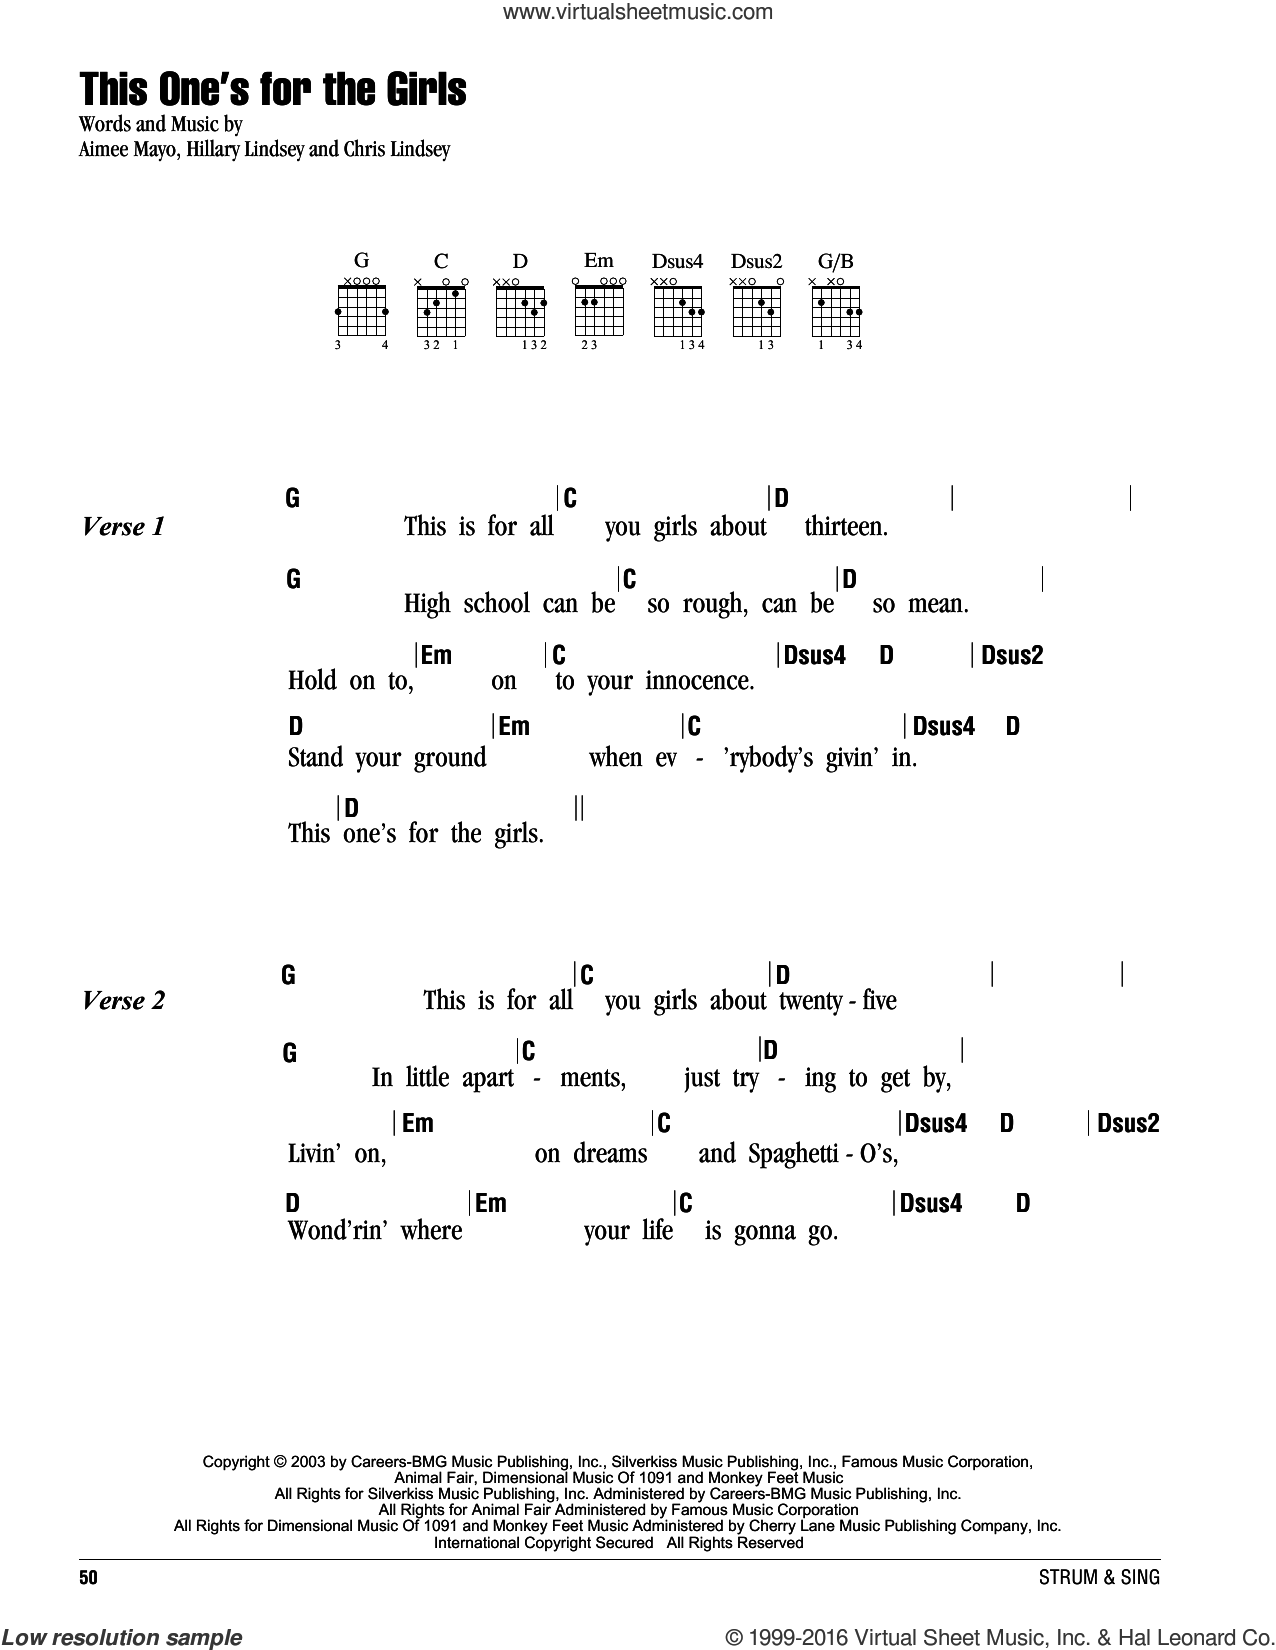 This One's For The Girls sheet music for guitar (chords) by Martina McBride, Aimee Mayo, Chris Lindsey and Hillary Lindsey, intermediate